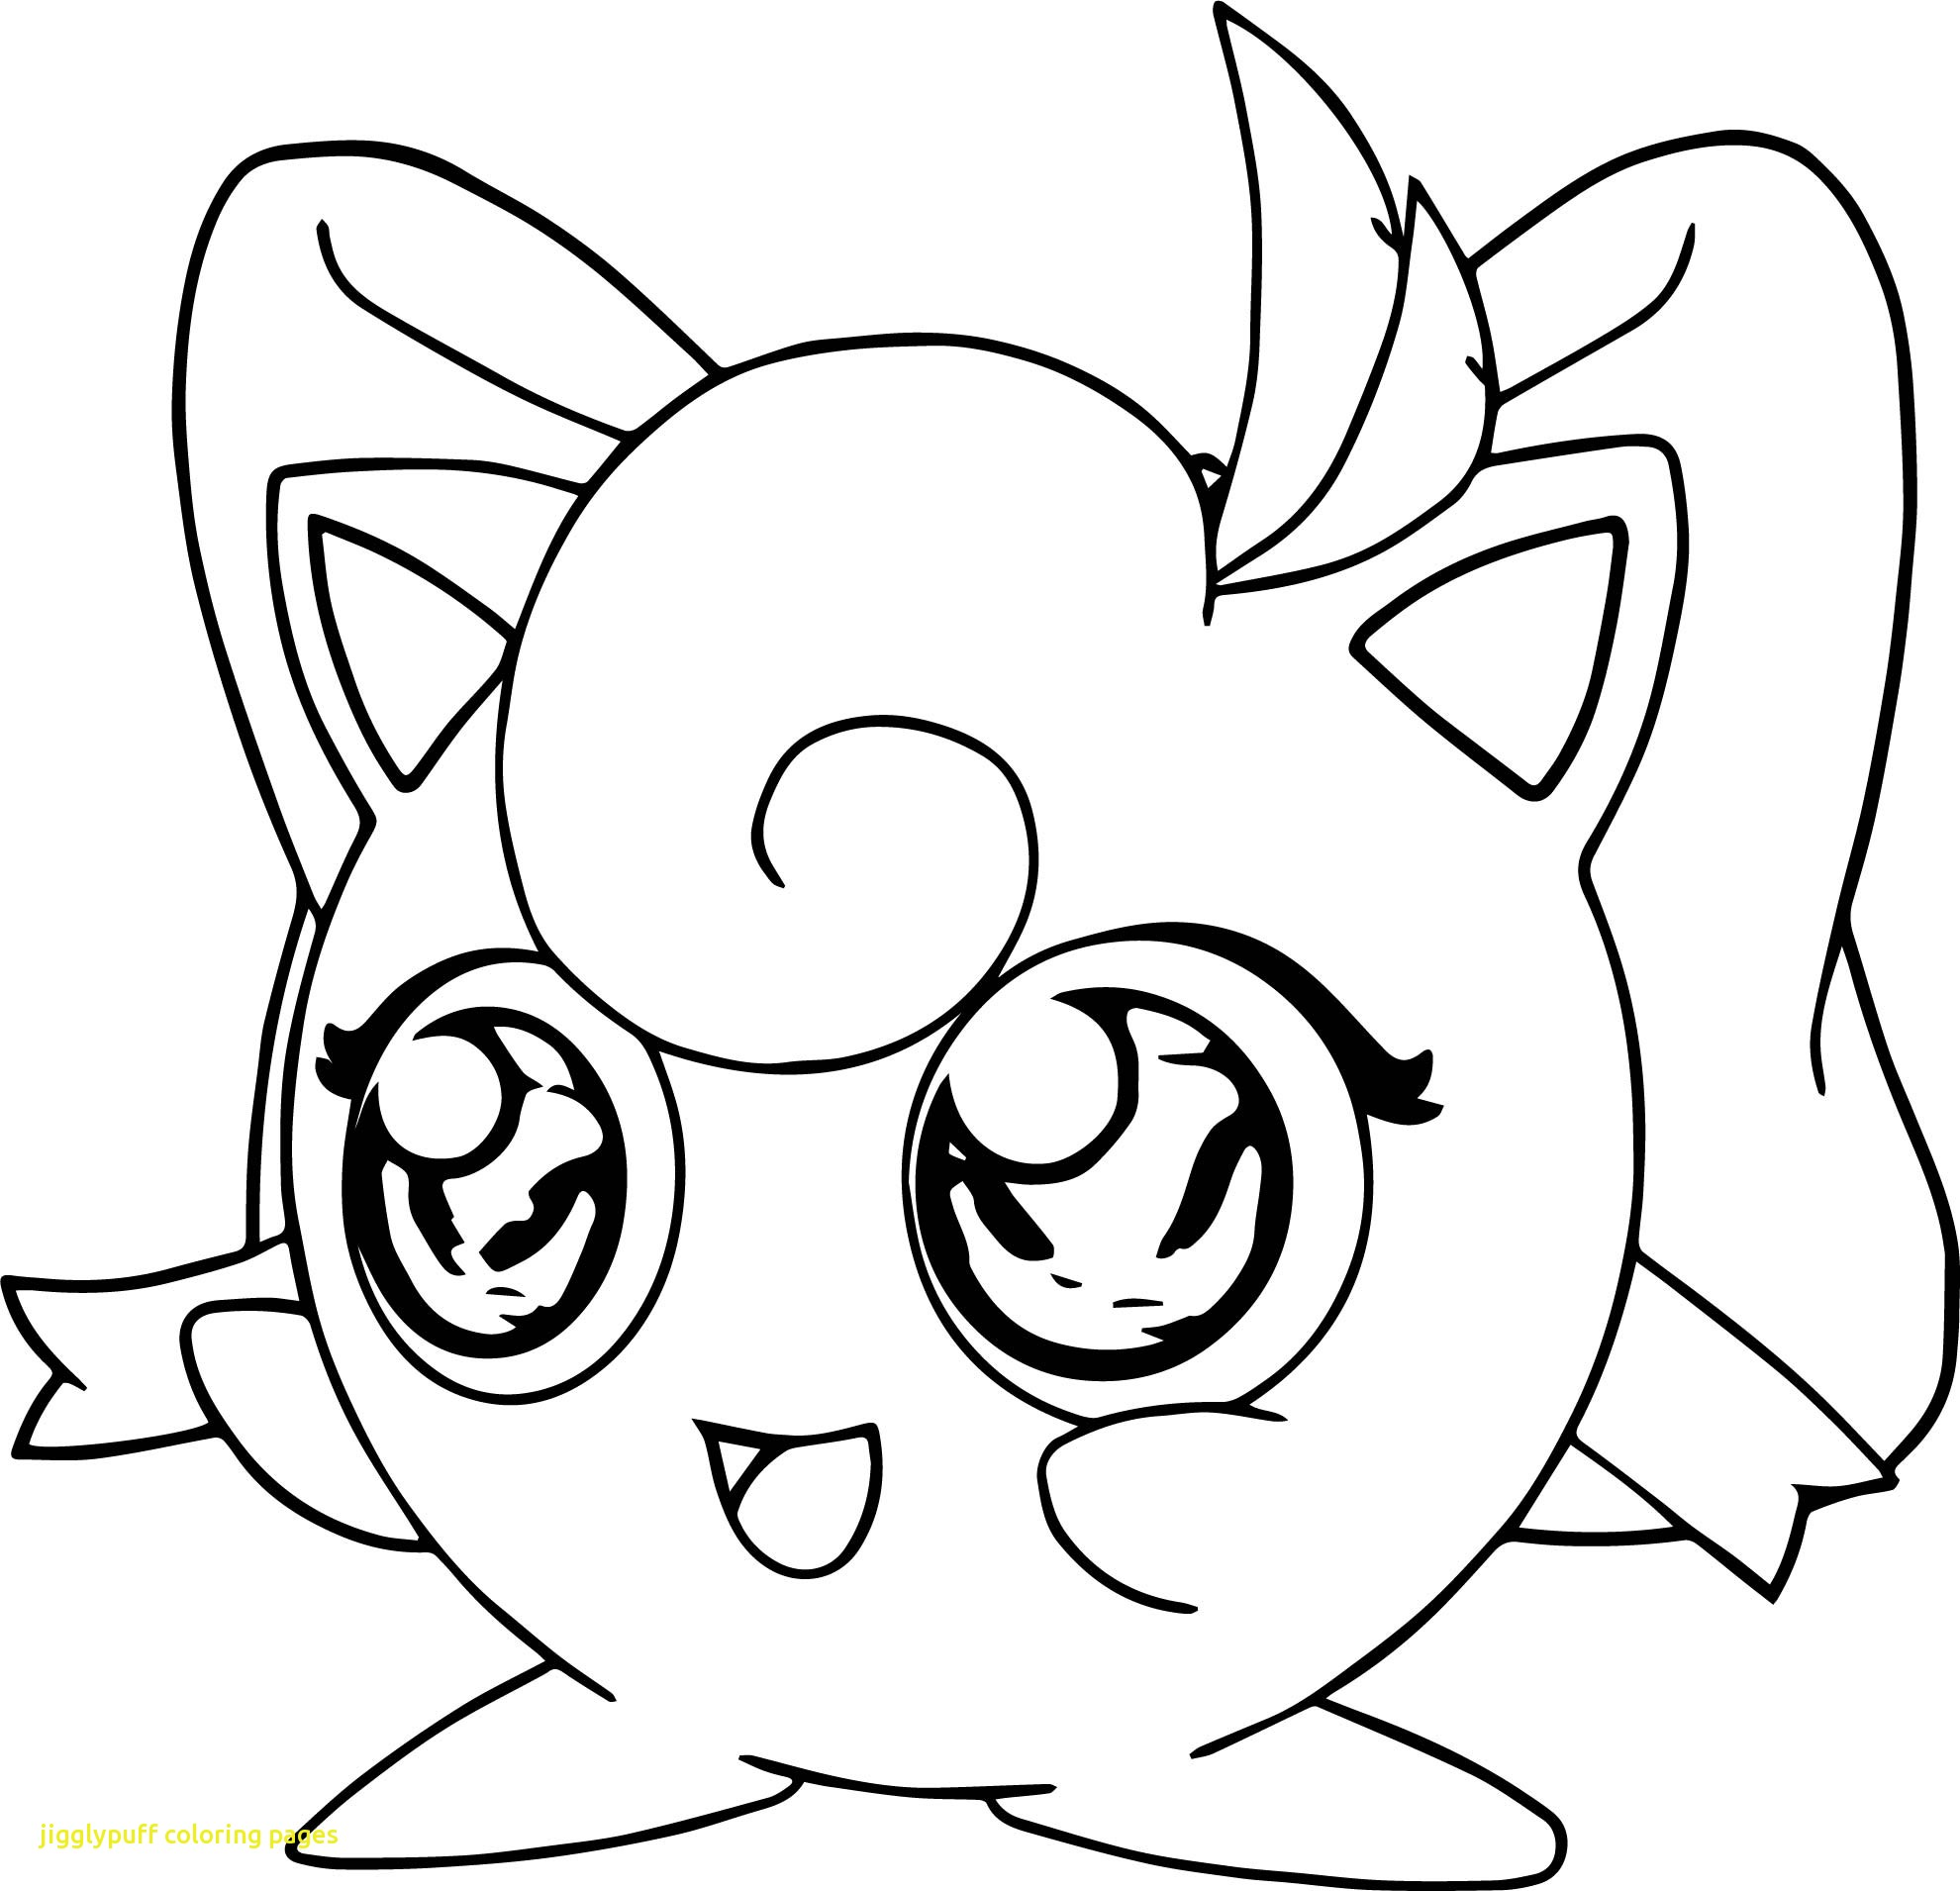 cute jigglypuff coloring pages how to draw jigglypuff draw central jigglypuff cute coloring pages